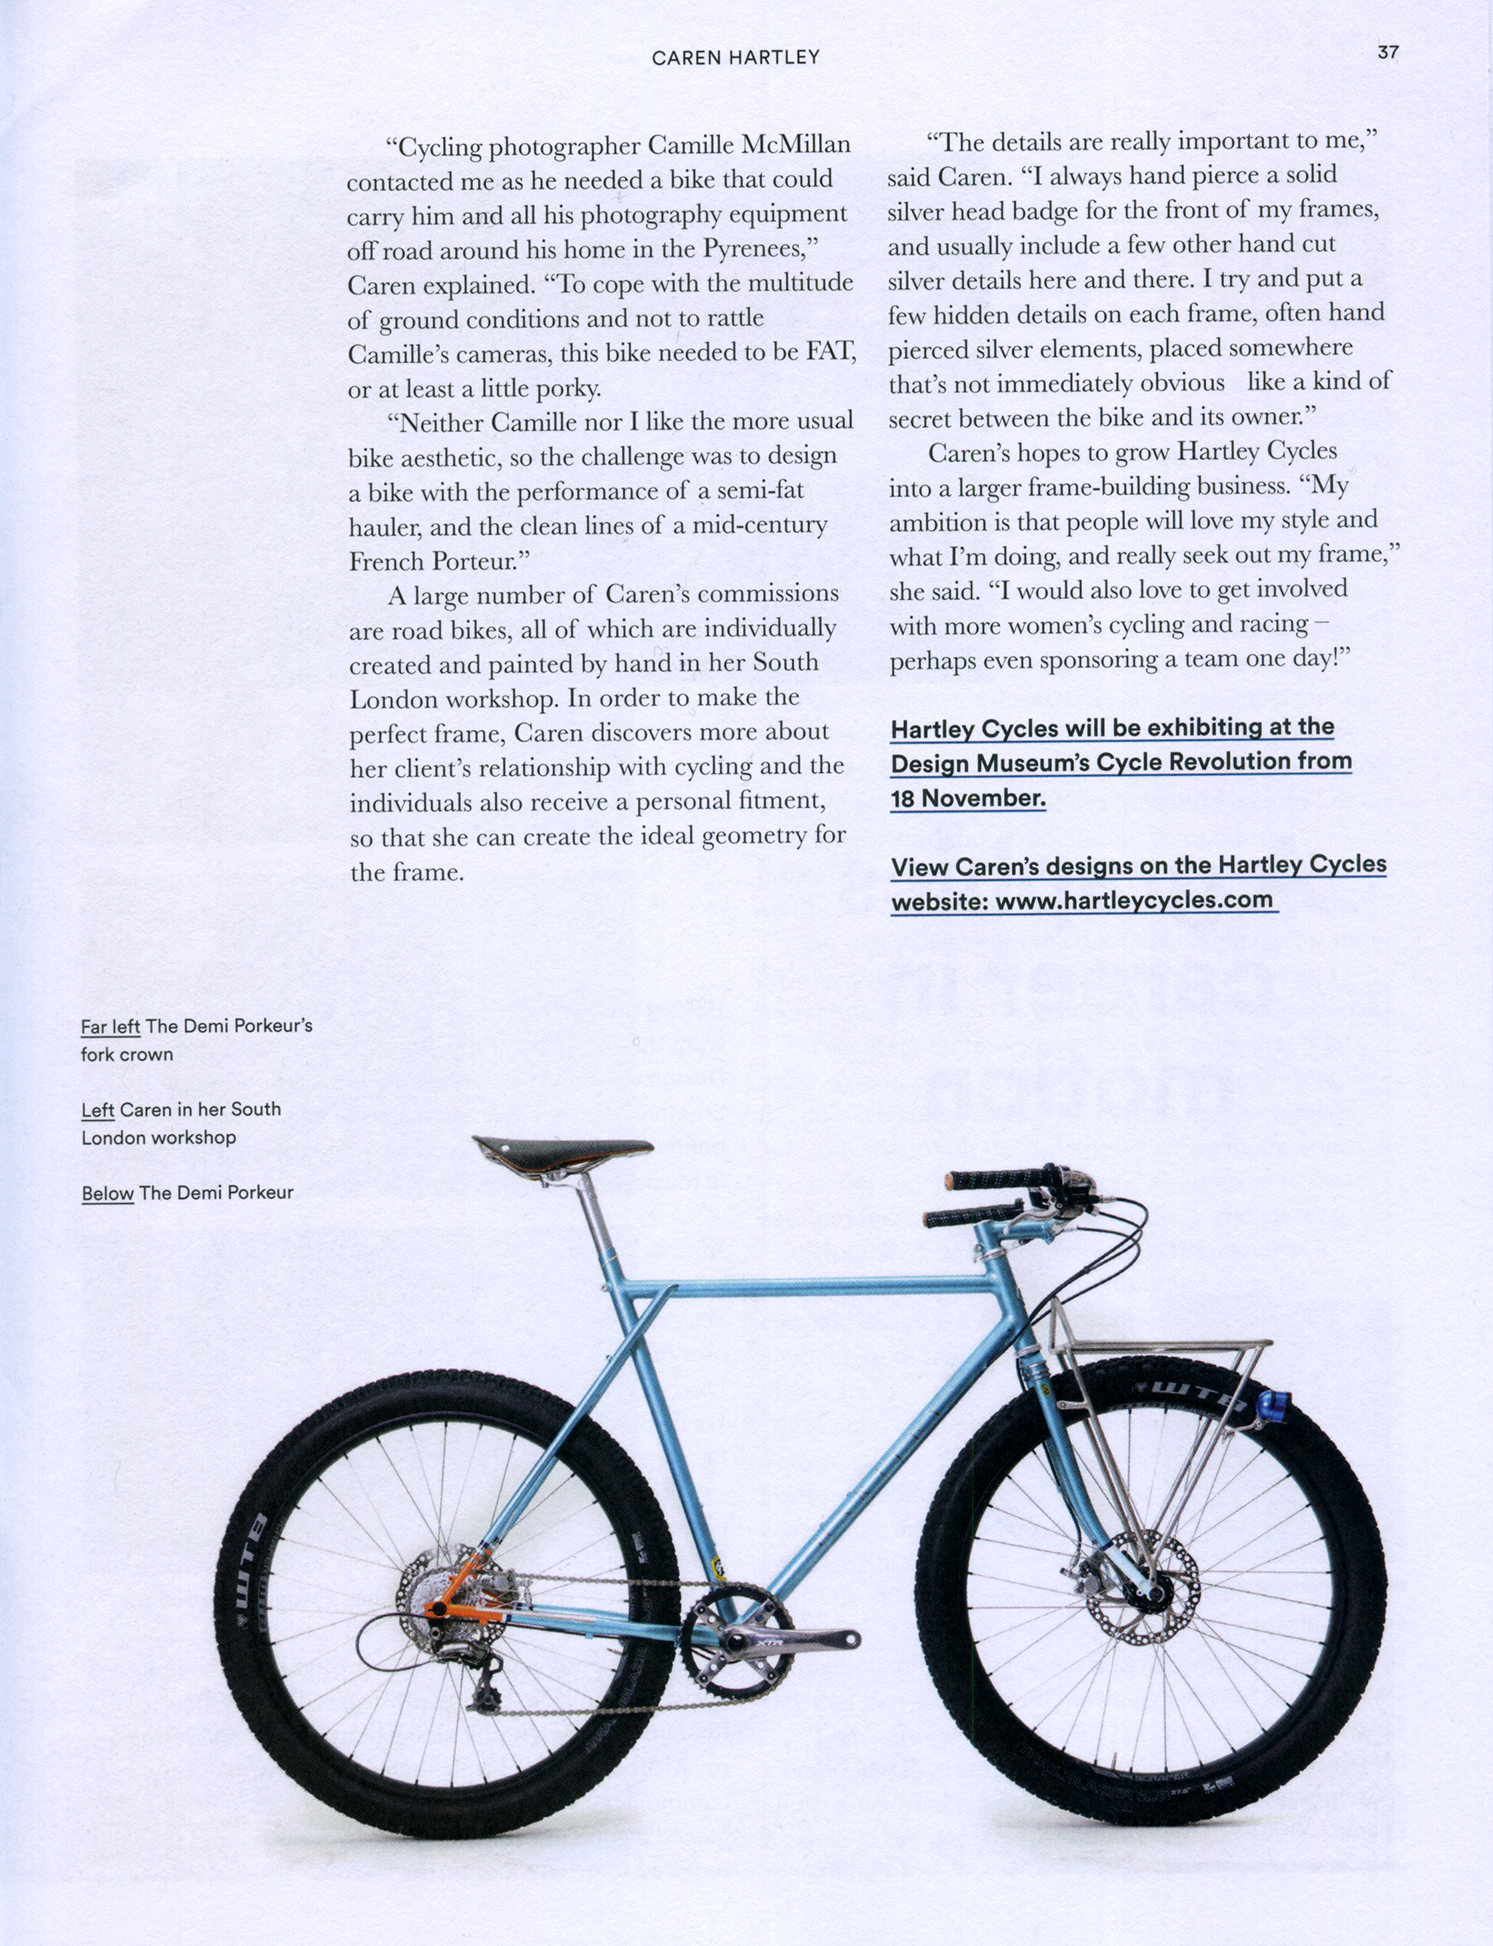 hc_creative_update_page4_bespoke_bicycles_hartley_london